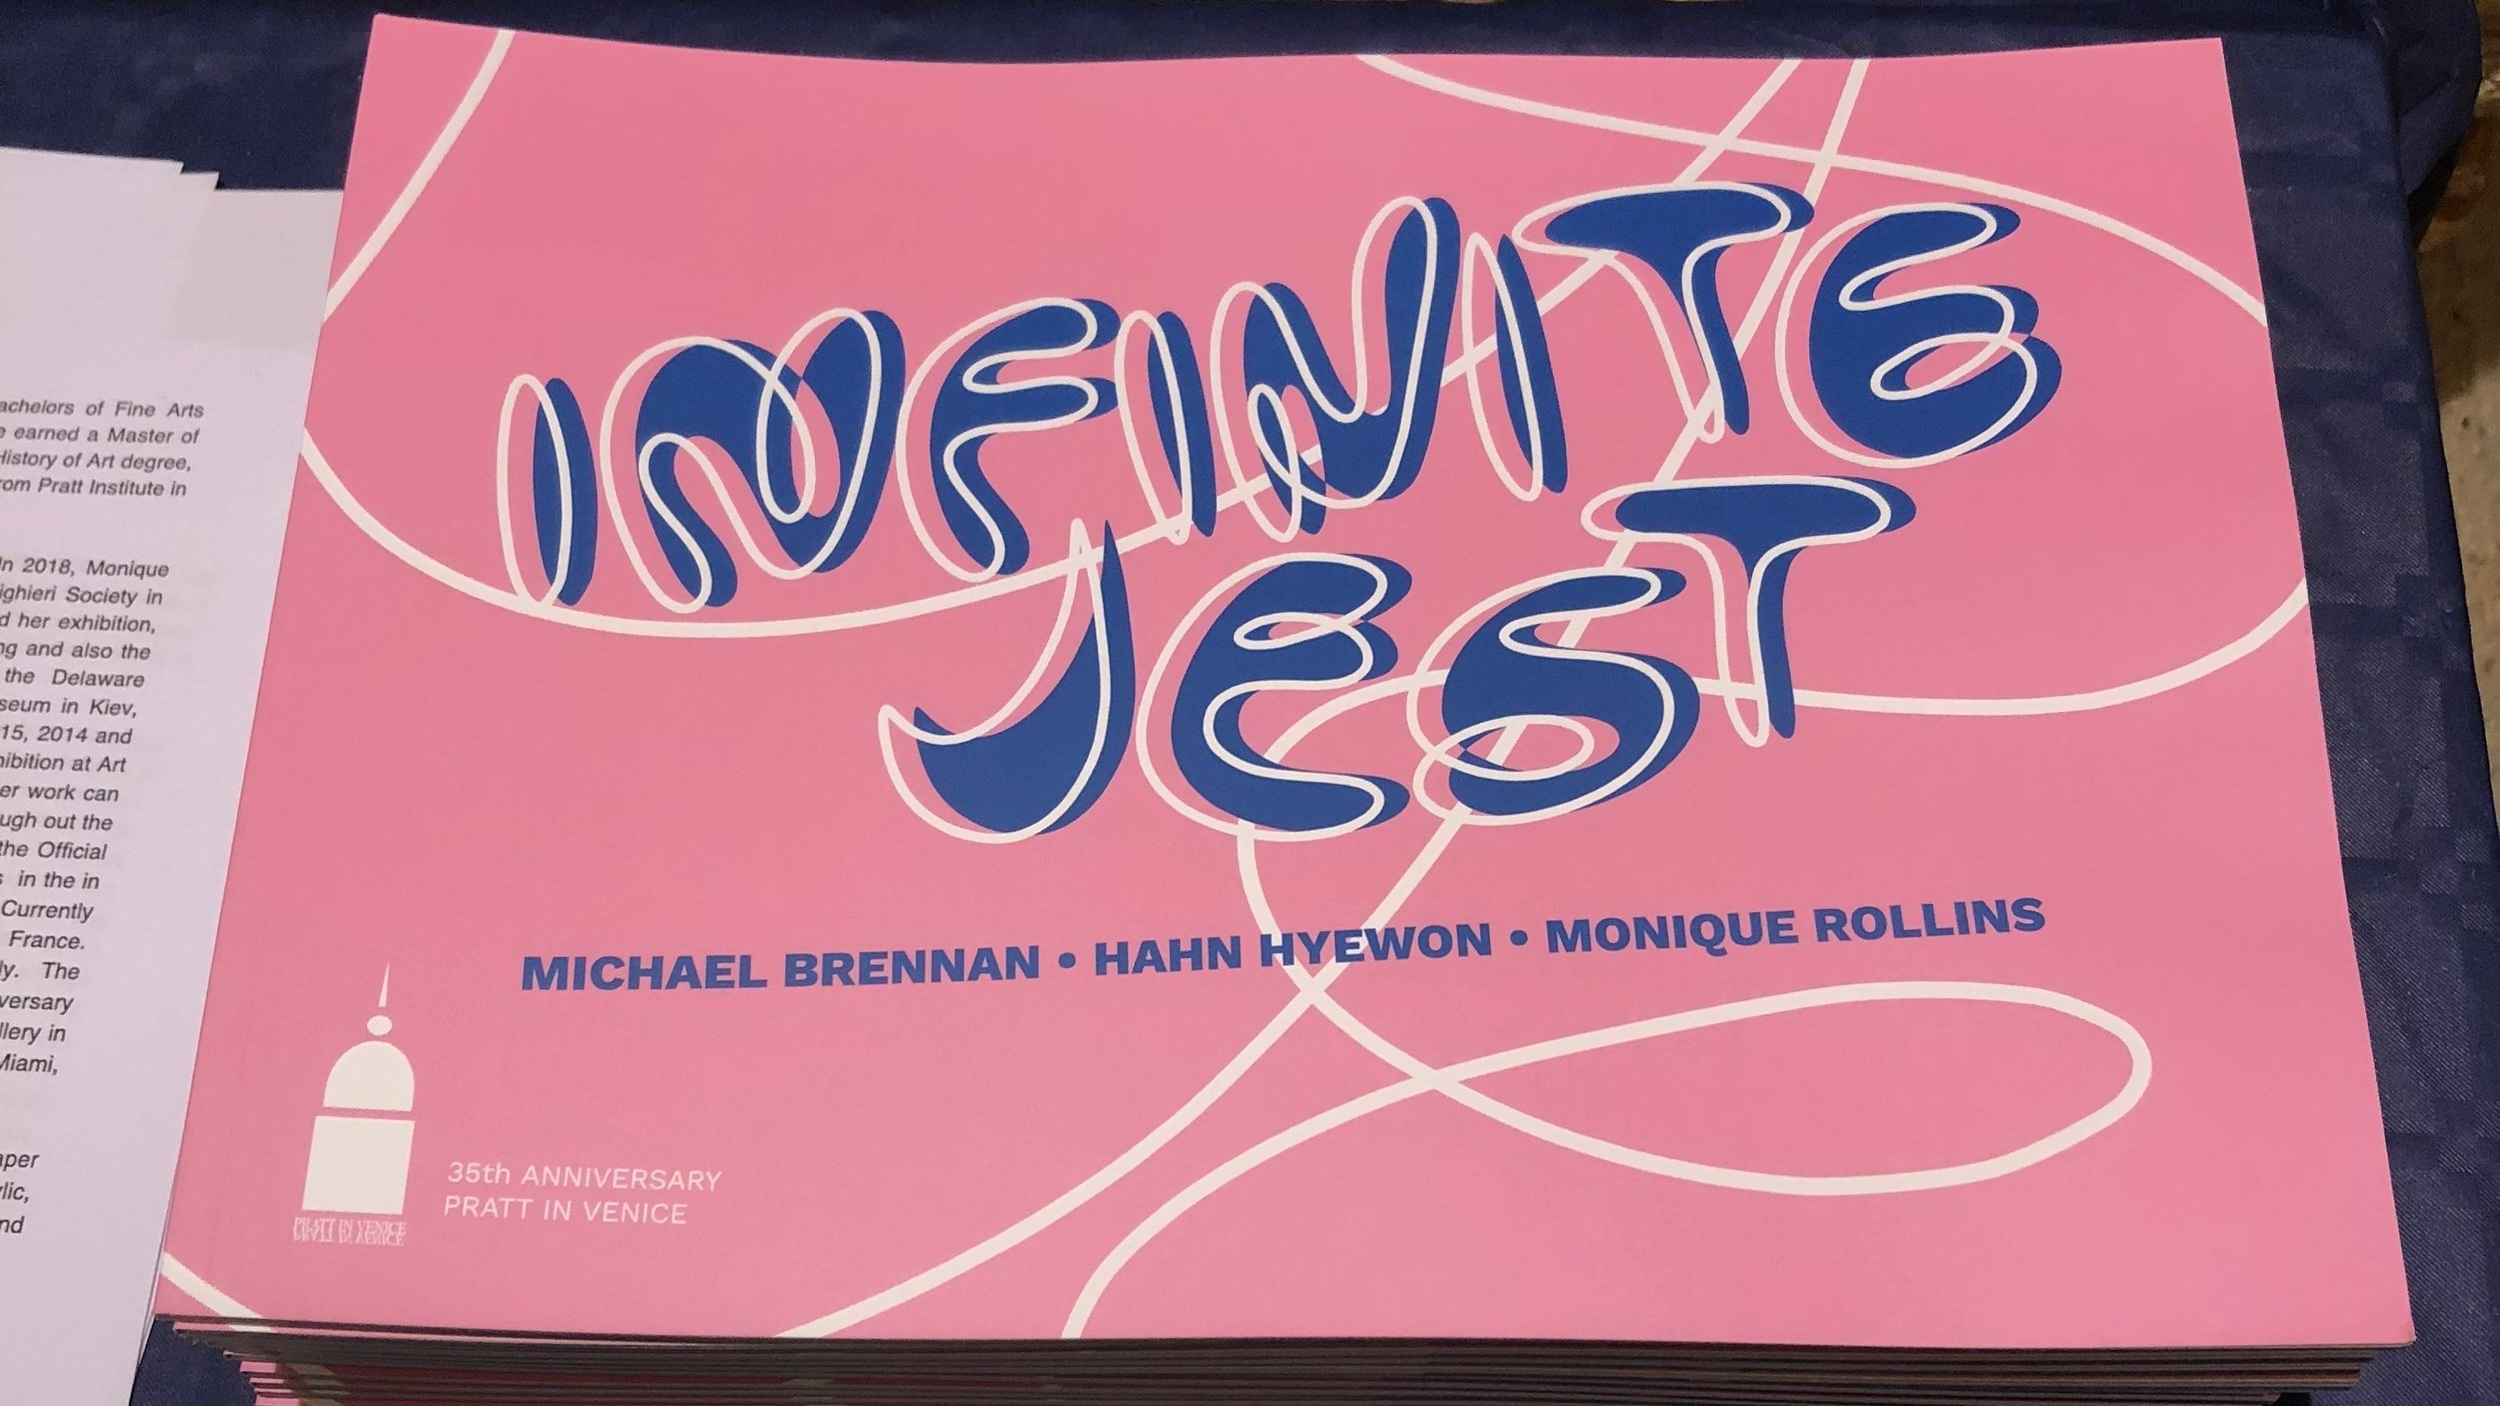 Infinite Jest  catalogue, published on the occasion of Pratt in Venice's 35th Anniversary (designed by Leonardo Guerra).